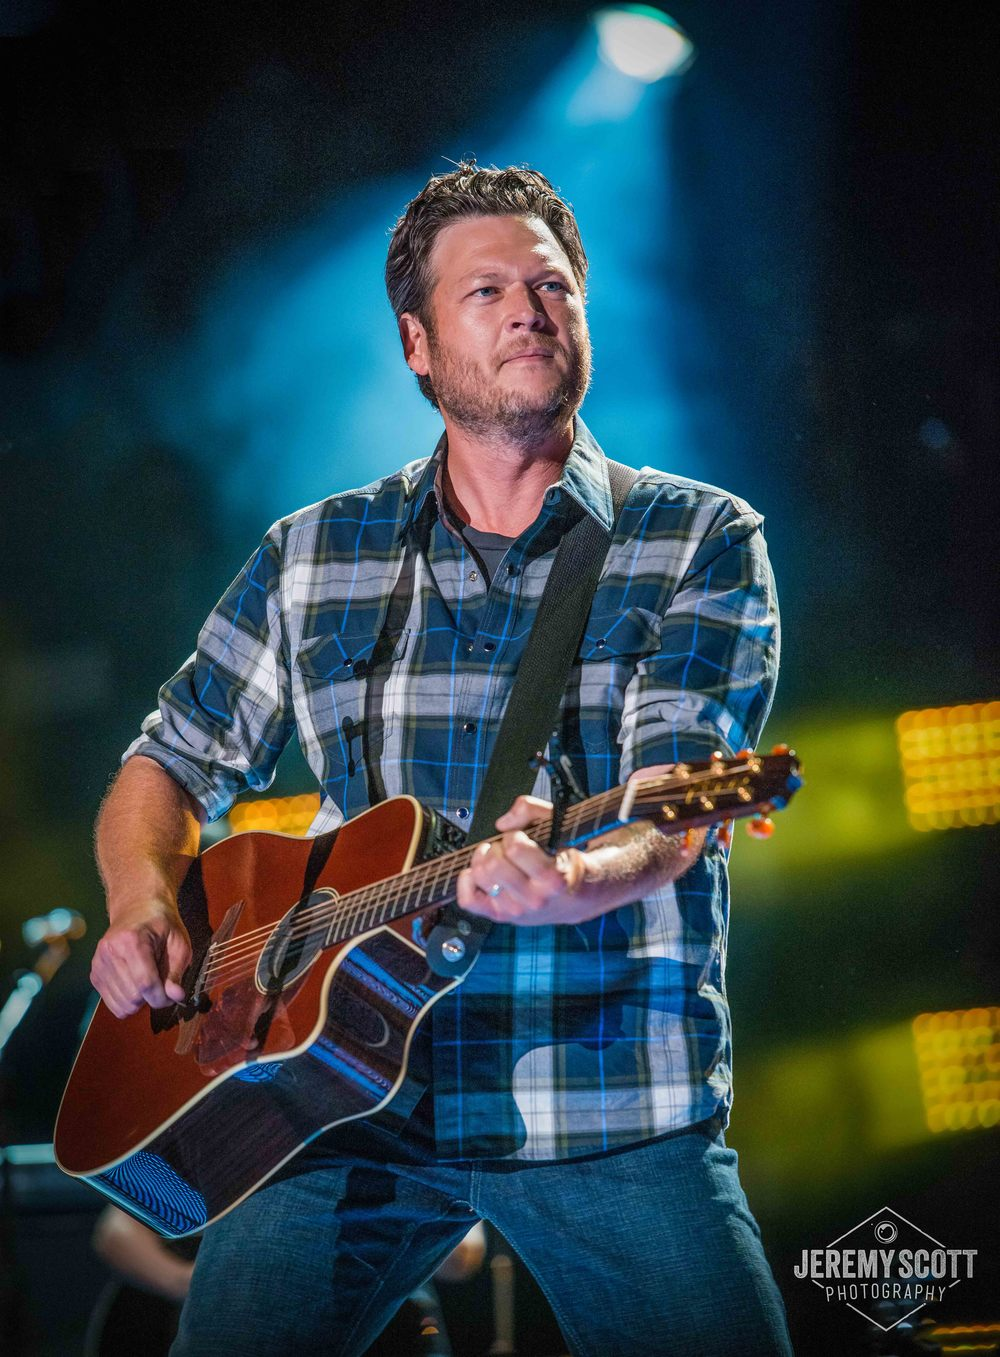 CO_140607_Fan_Fest_Blake_Shelton-7408e-2.jpg